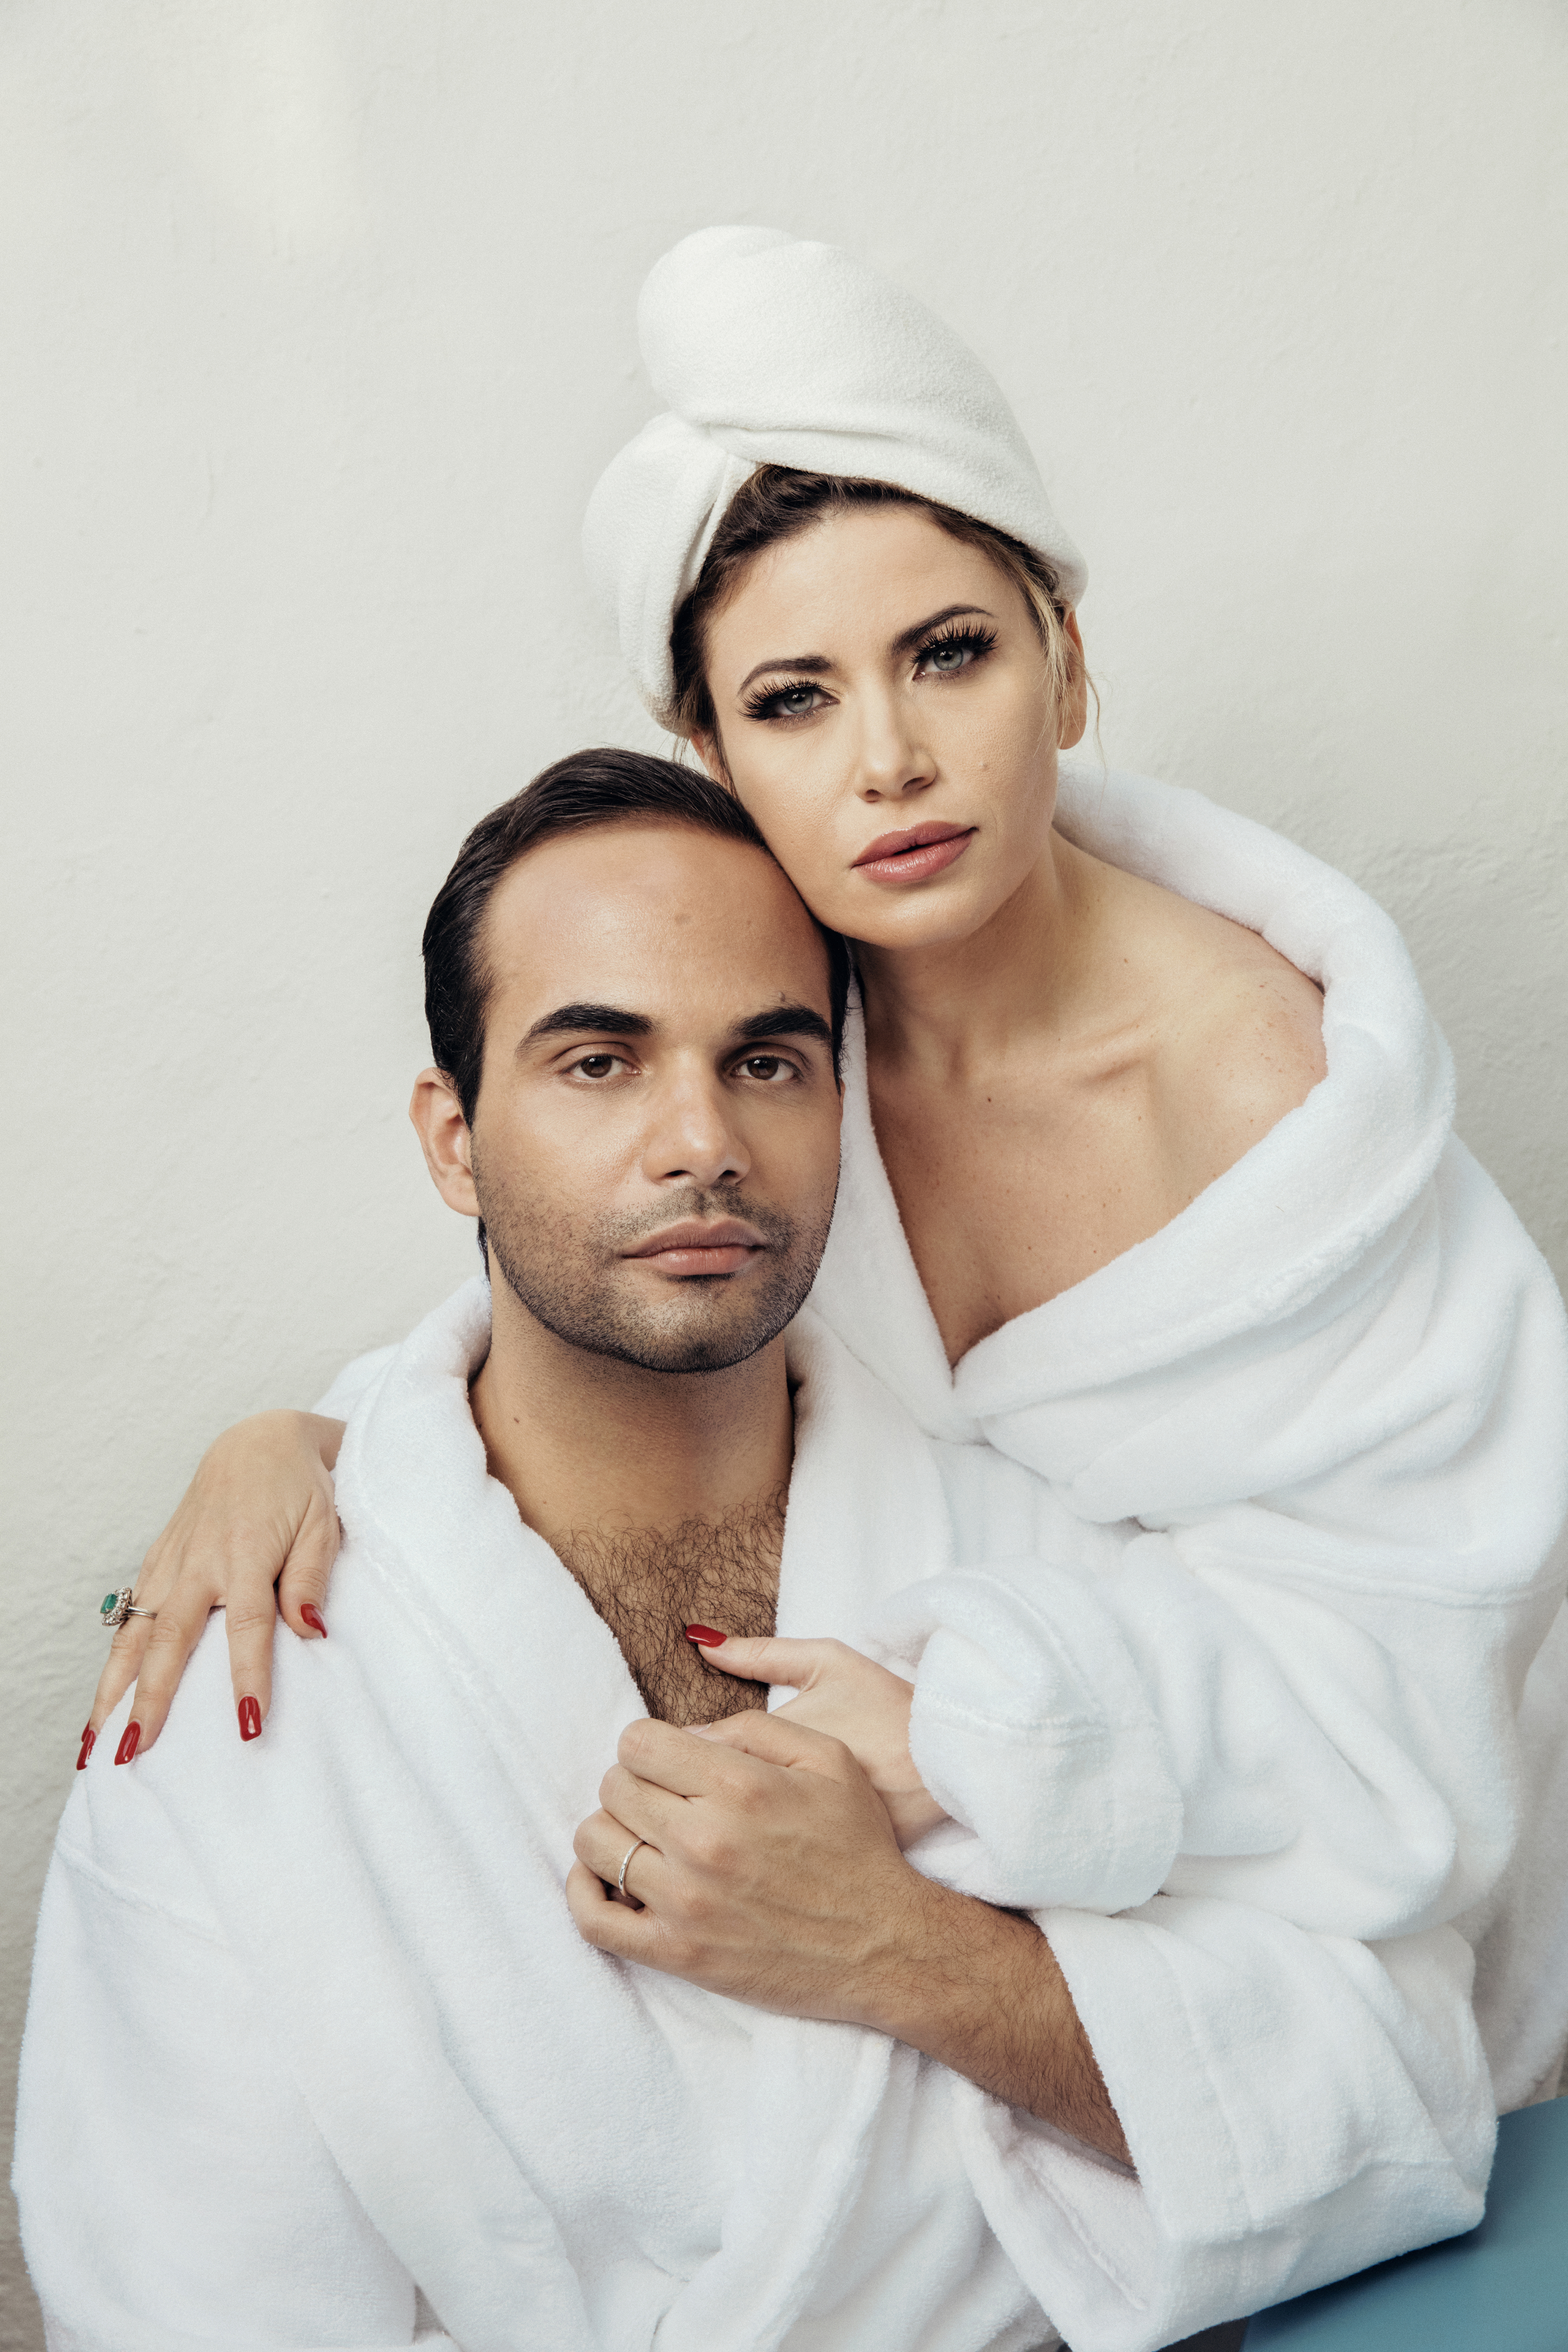 George and Simona Papadopoulos in their Los Angeles home. A film crew has been following the couple shooting a docu-series. MUST CREDIT: Photo for The Washington Post by Elisabeth Caren